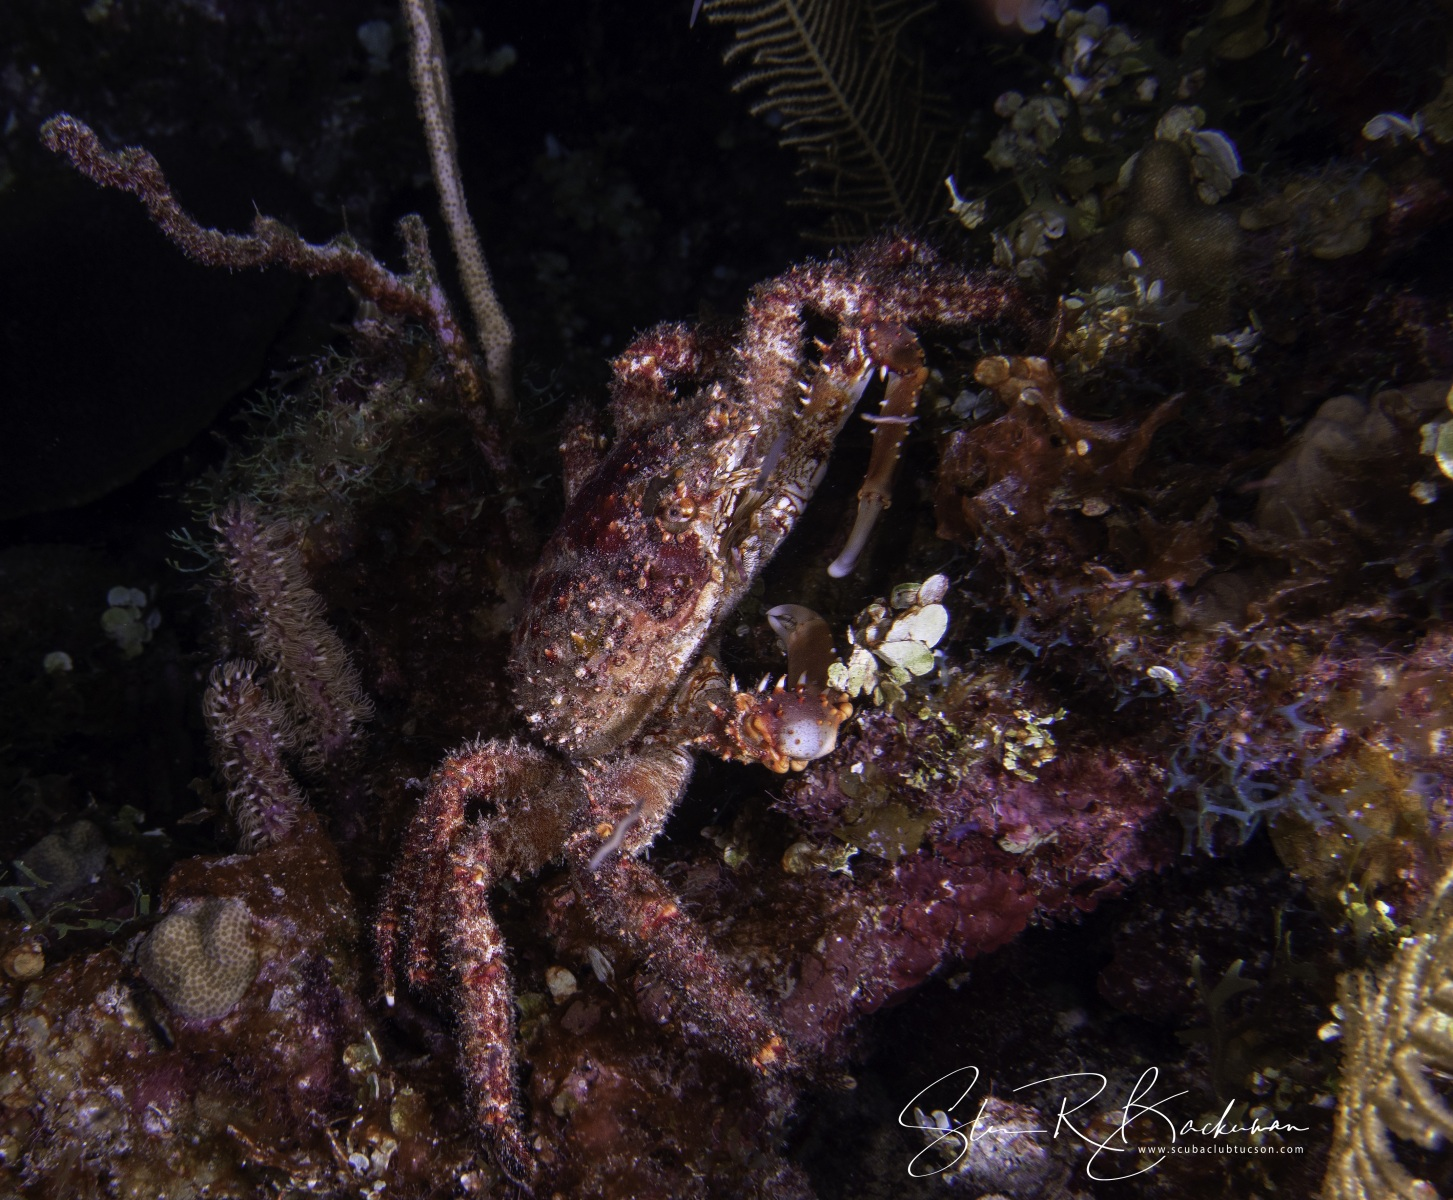 Channel-Clinging-Crab-2